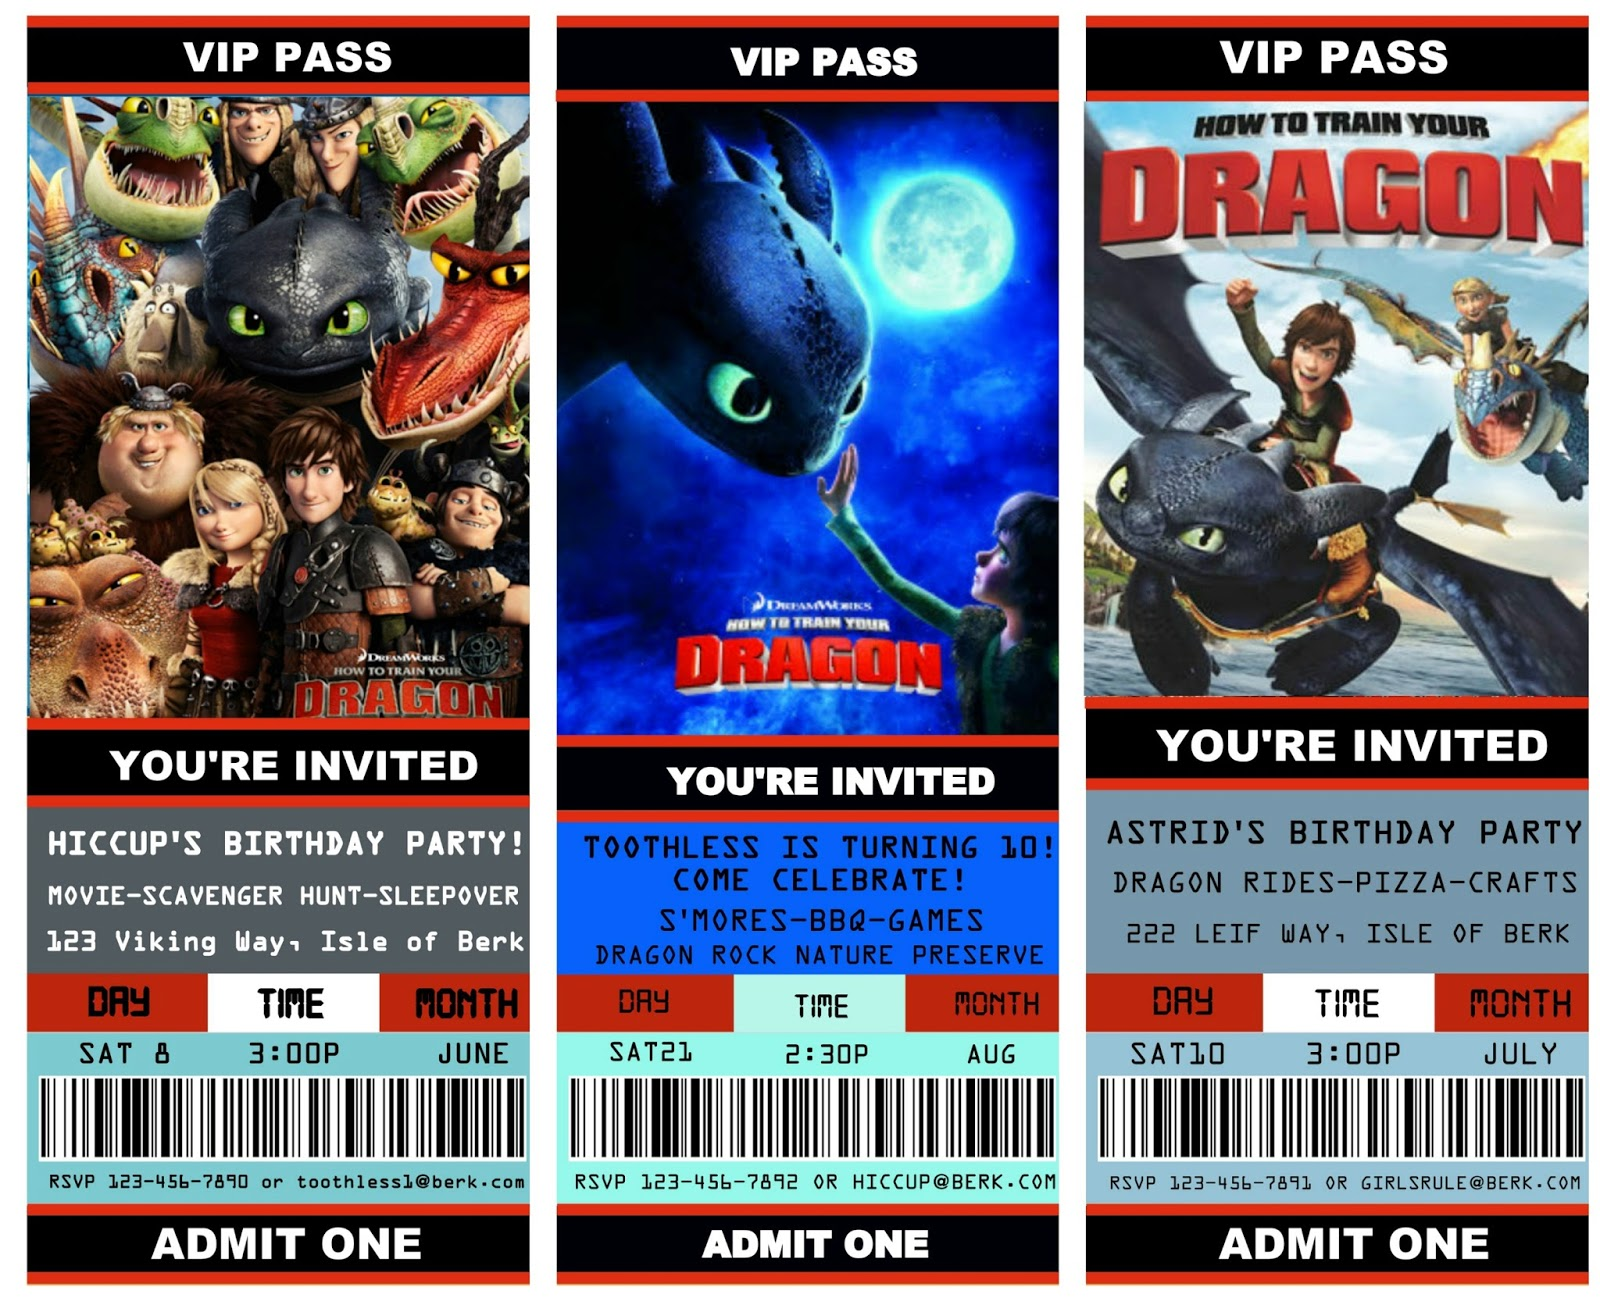 dragon birthday invitations printable ; how+to+train+your+dragon+free+movie+ticket+style+invitations